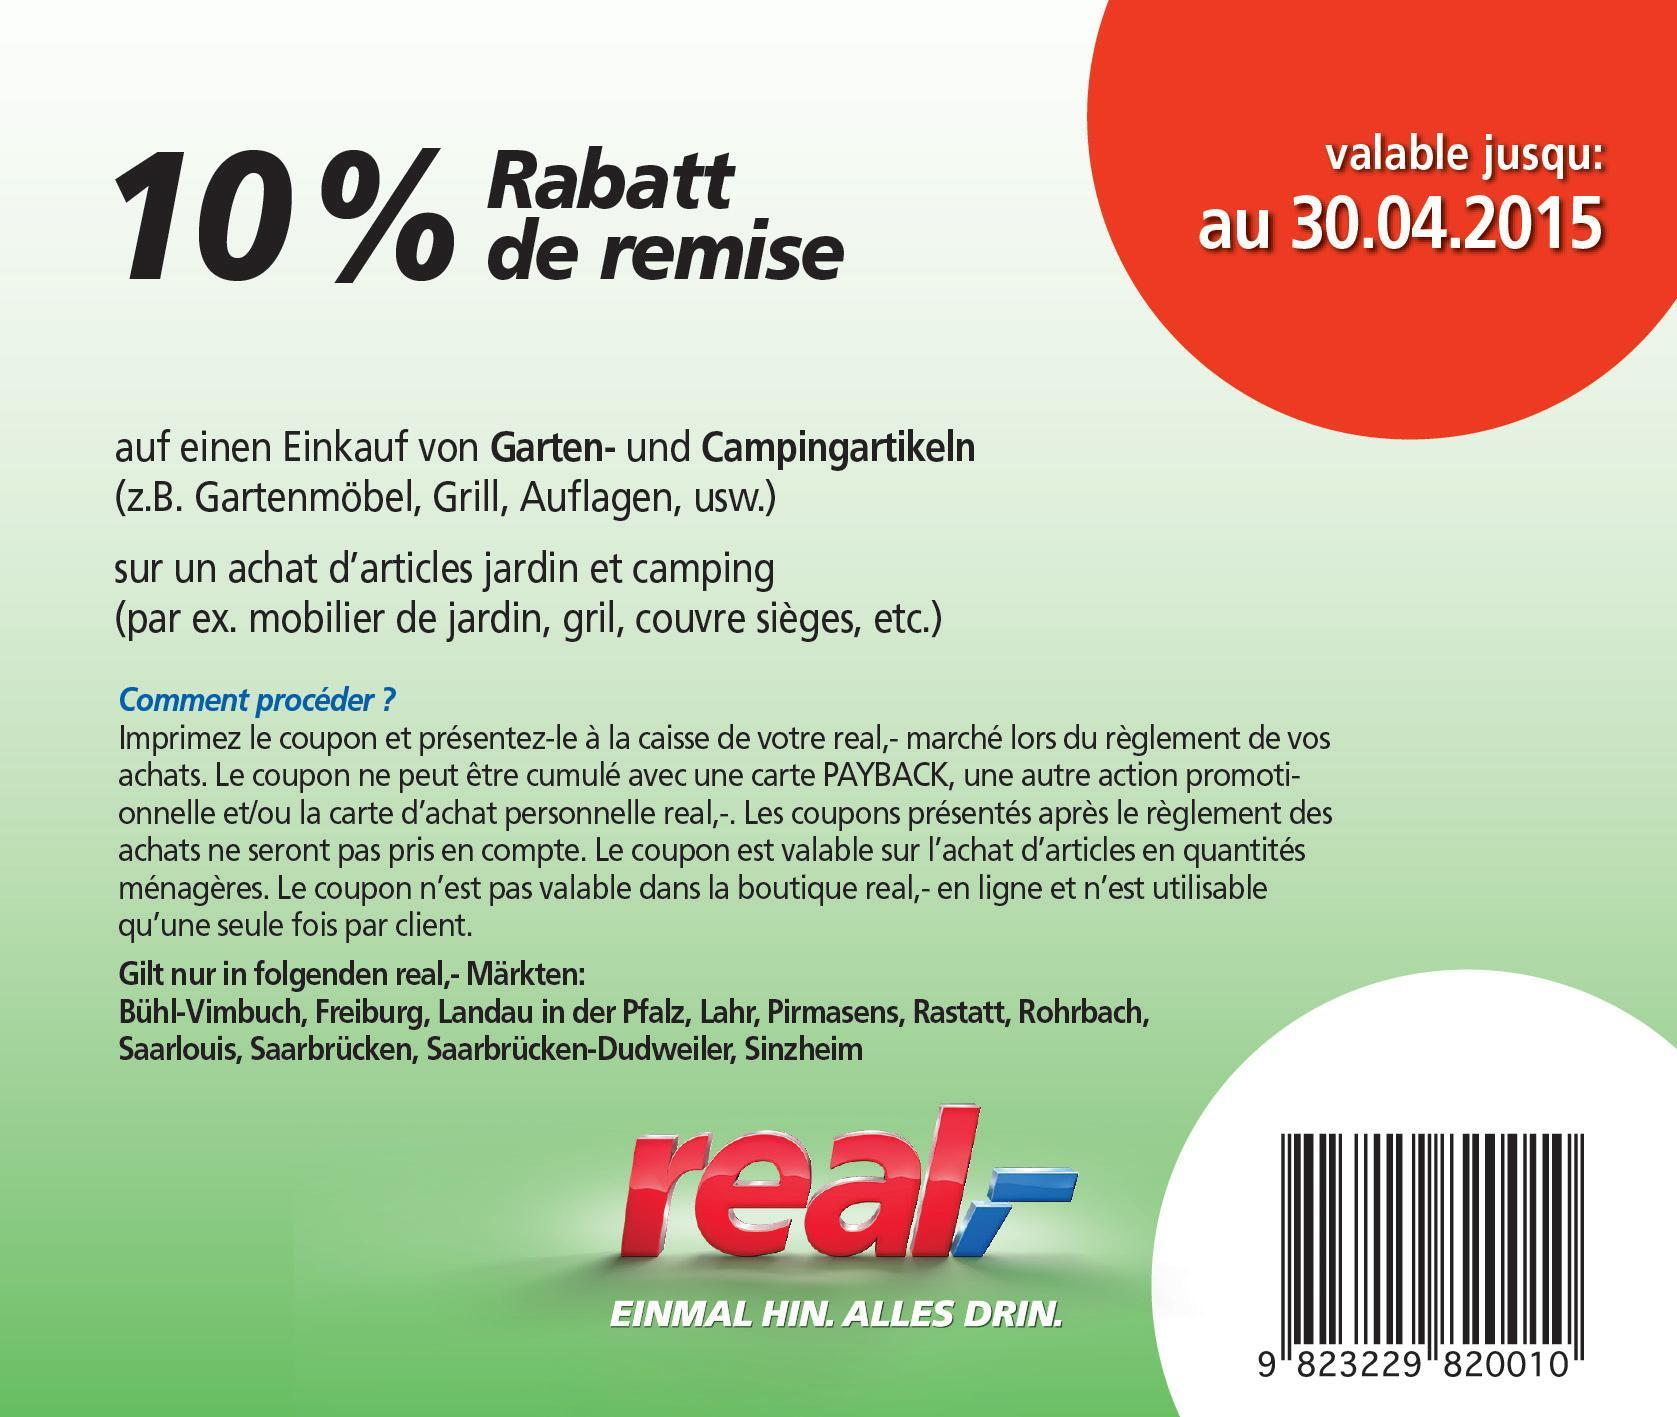 coupons_apr_2015_fr-pgkbg3.jpg